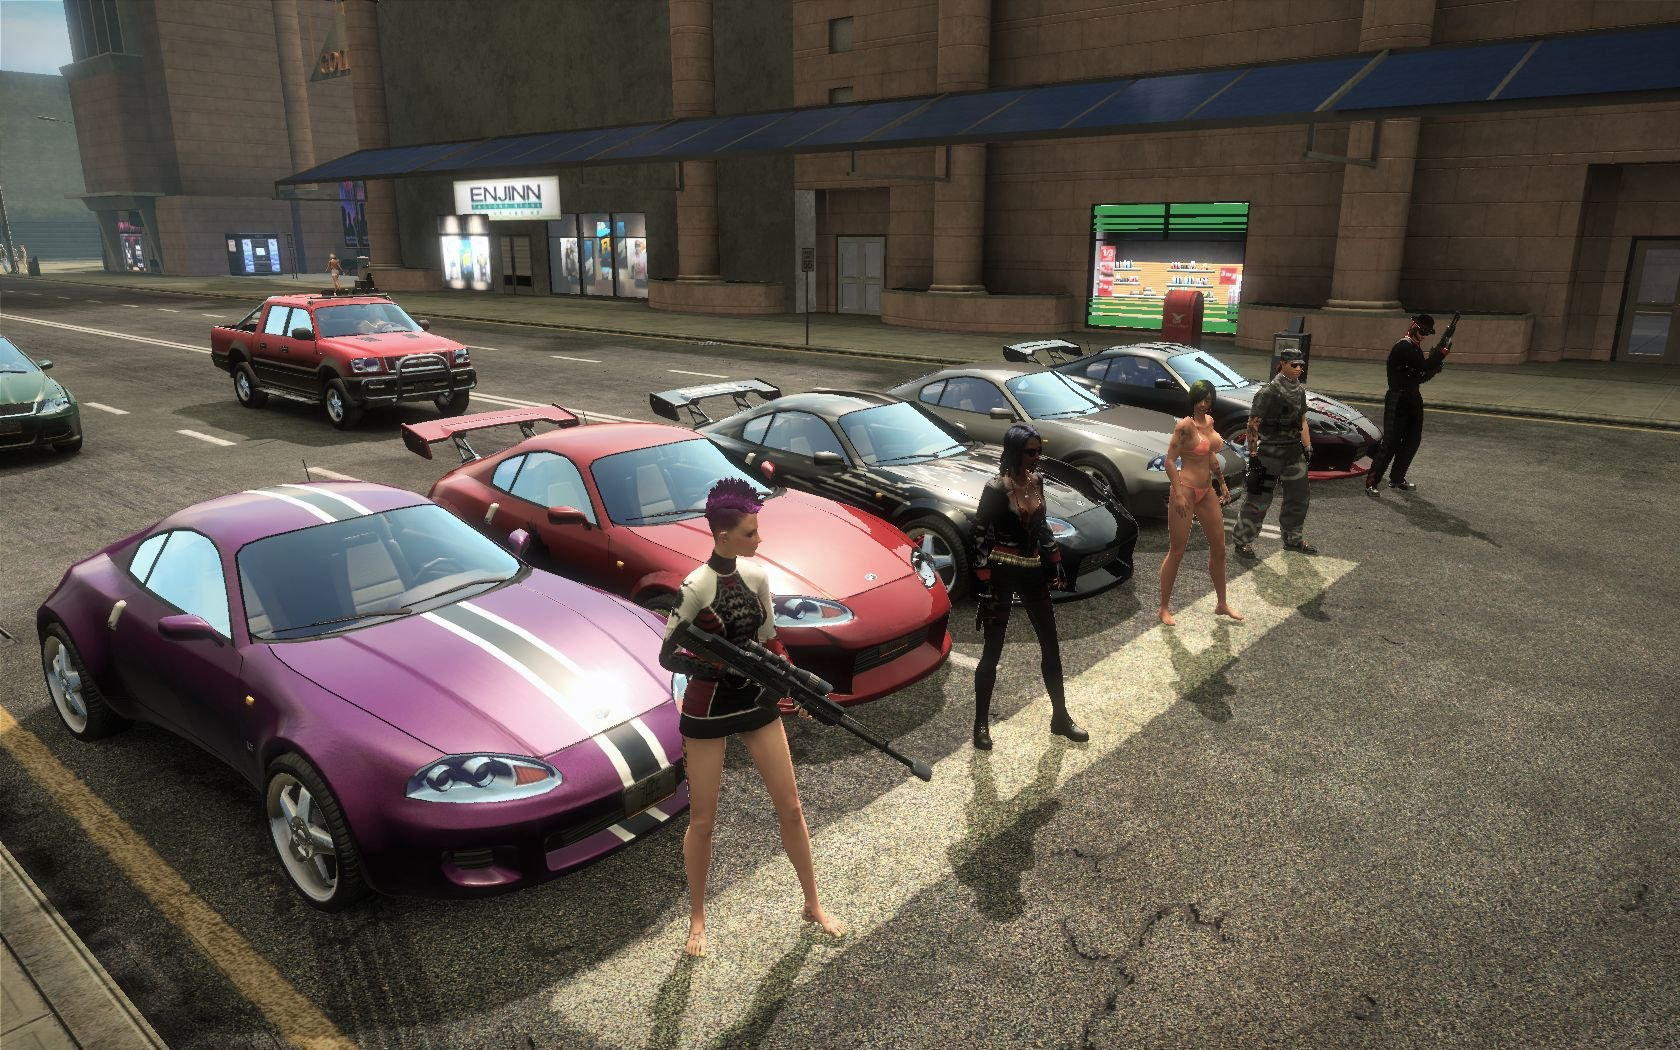 Apb reloaded - your cars